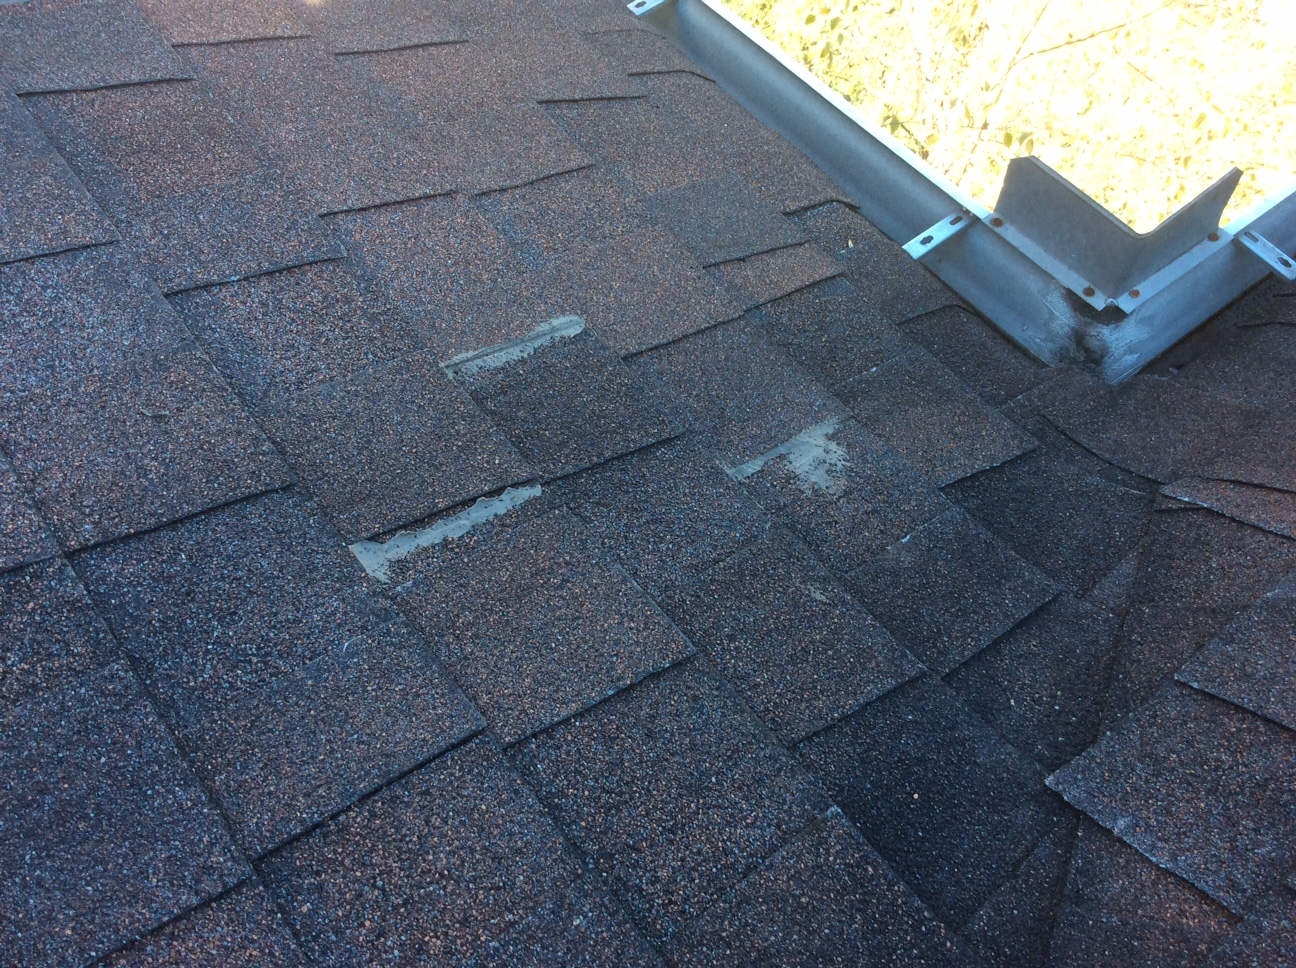 This is a section of shingles that will need to be replaced